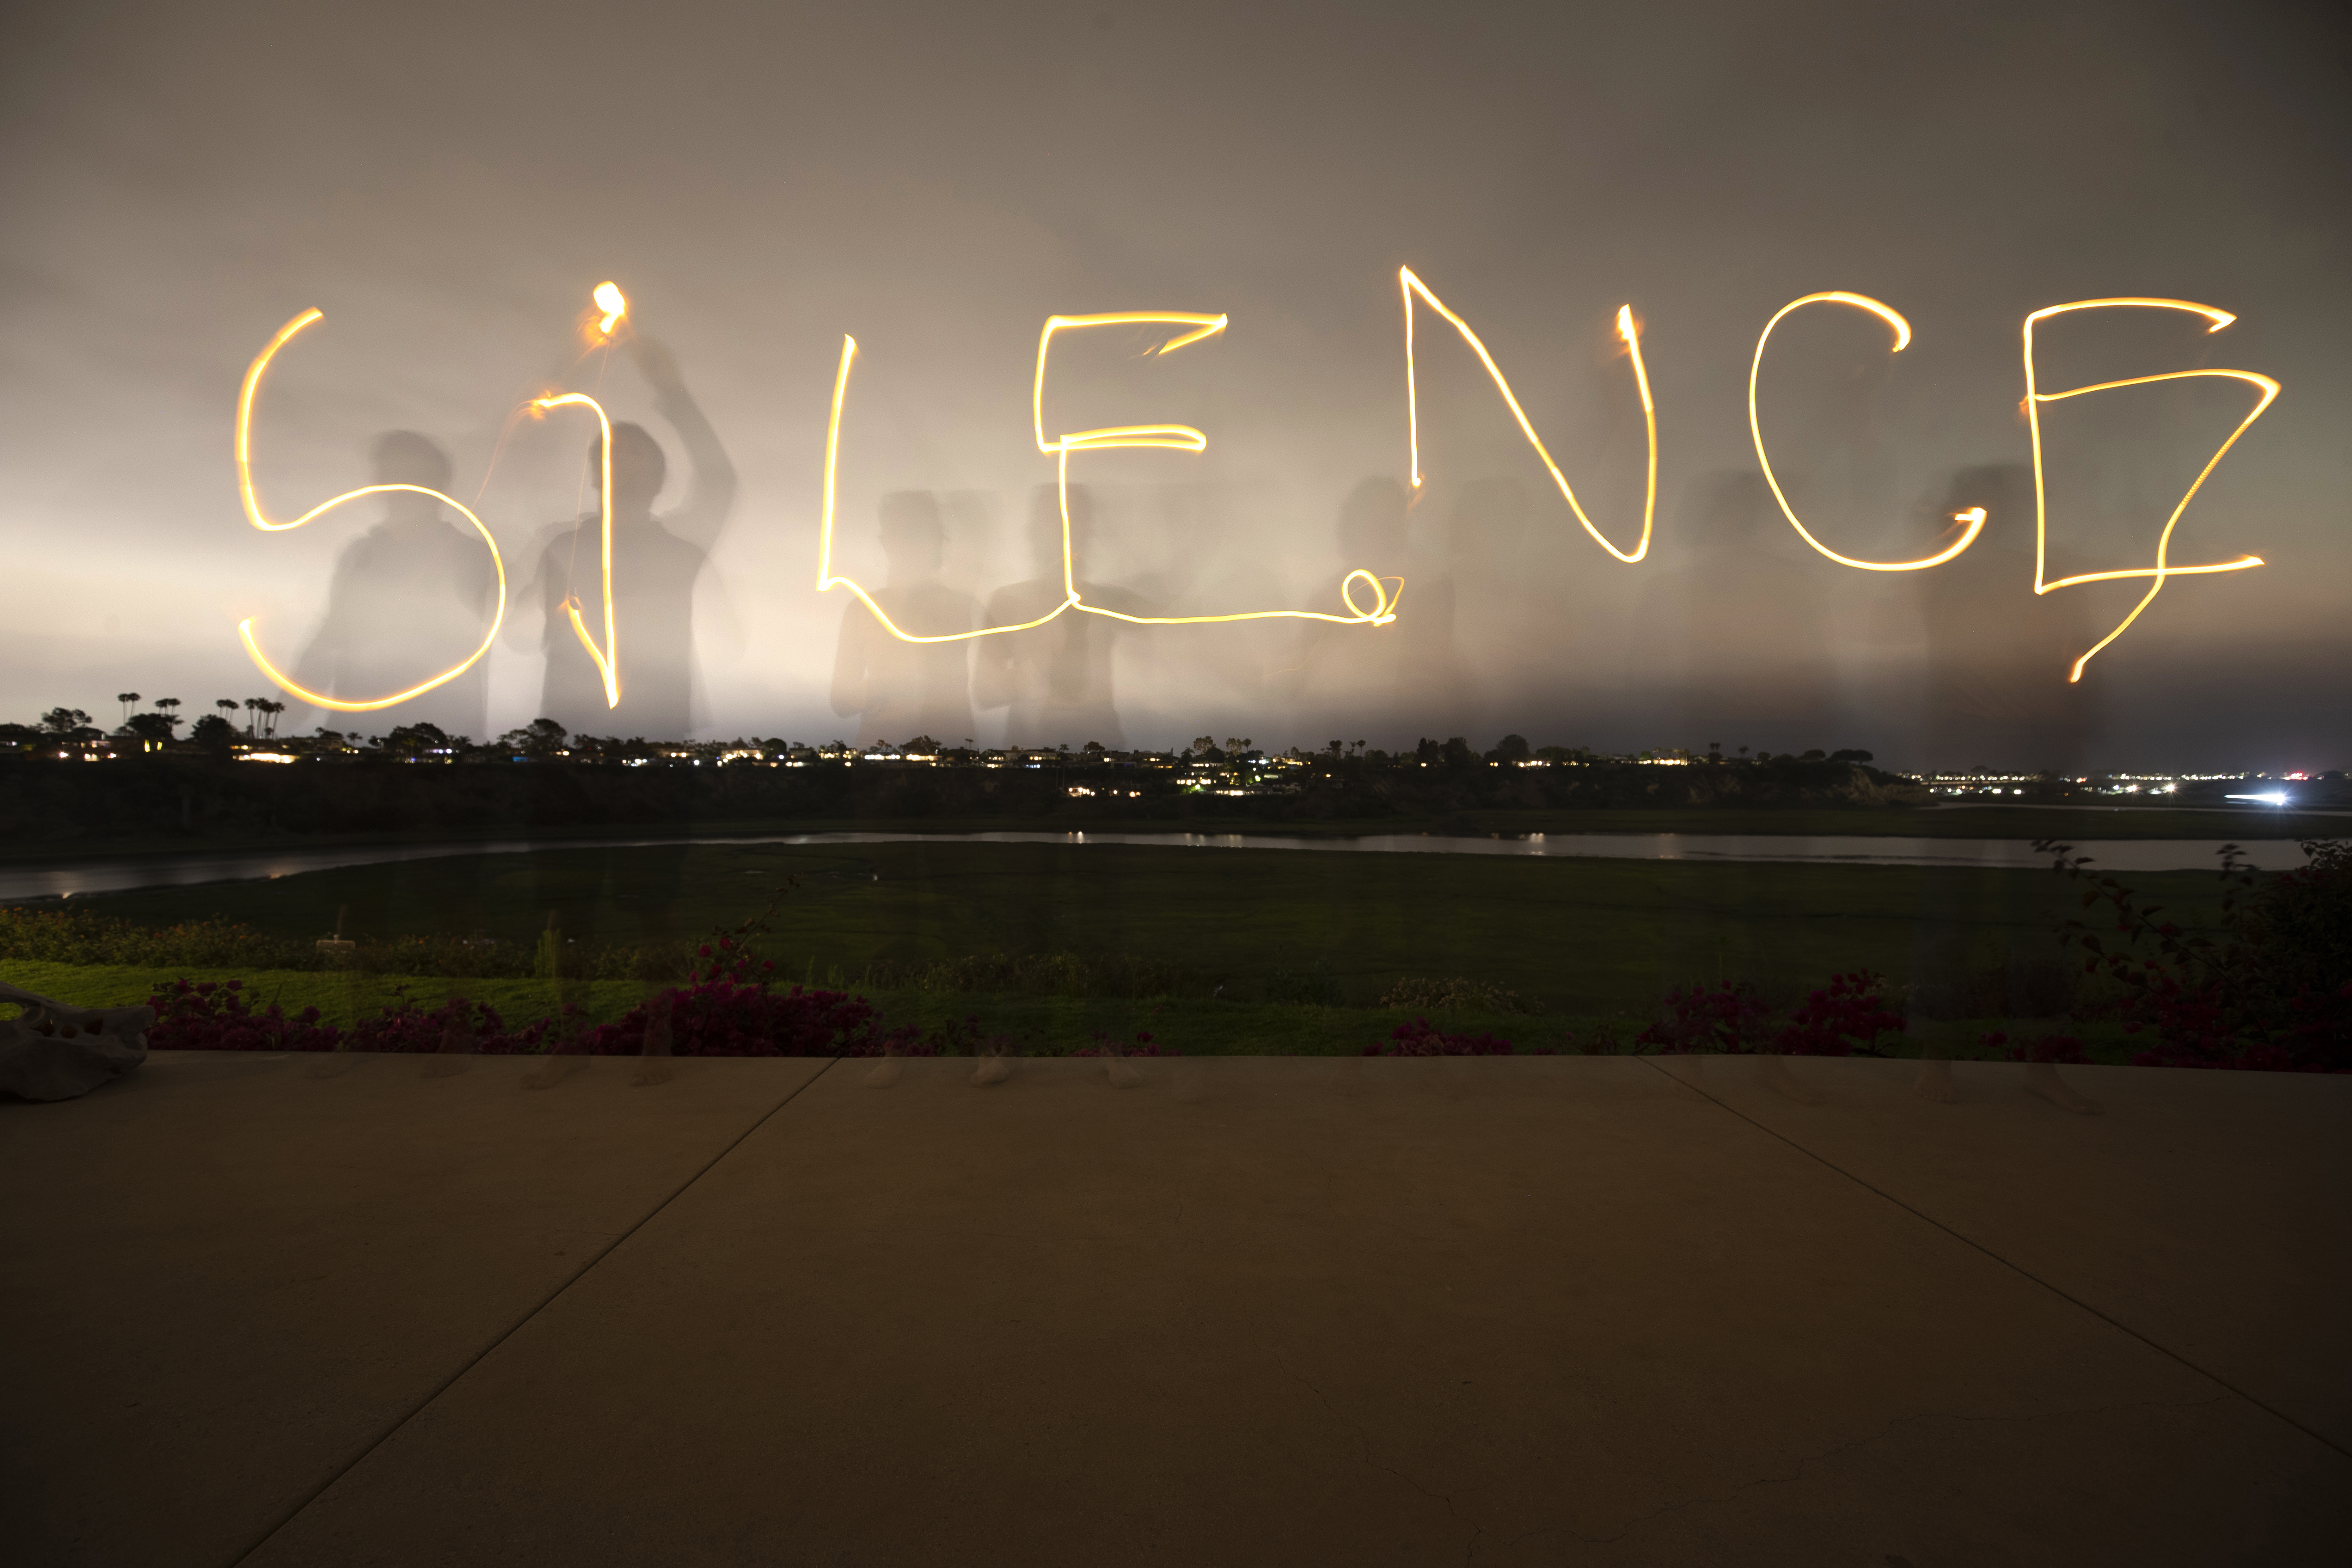 """ArtEvent: The silence image is a reference to the community moving installation portion of """"Tipping Point: Are We Creating a Silence?""""  Photo: Brett Hillyard"""